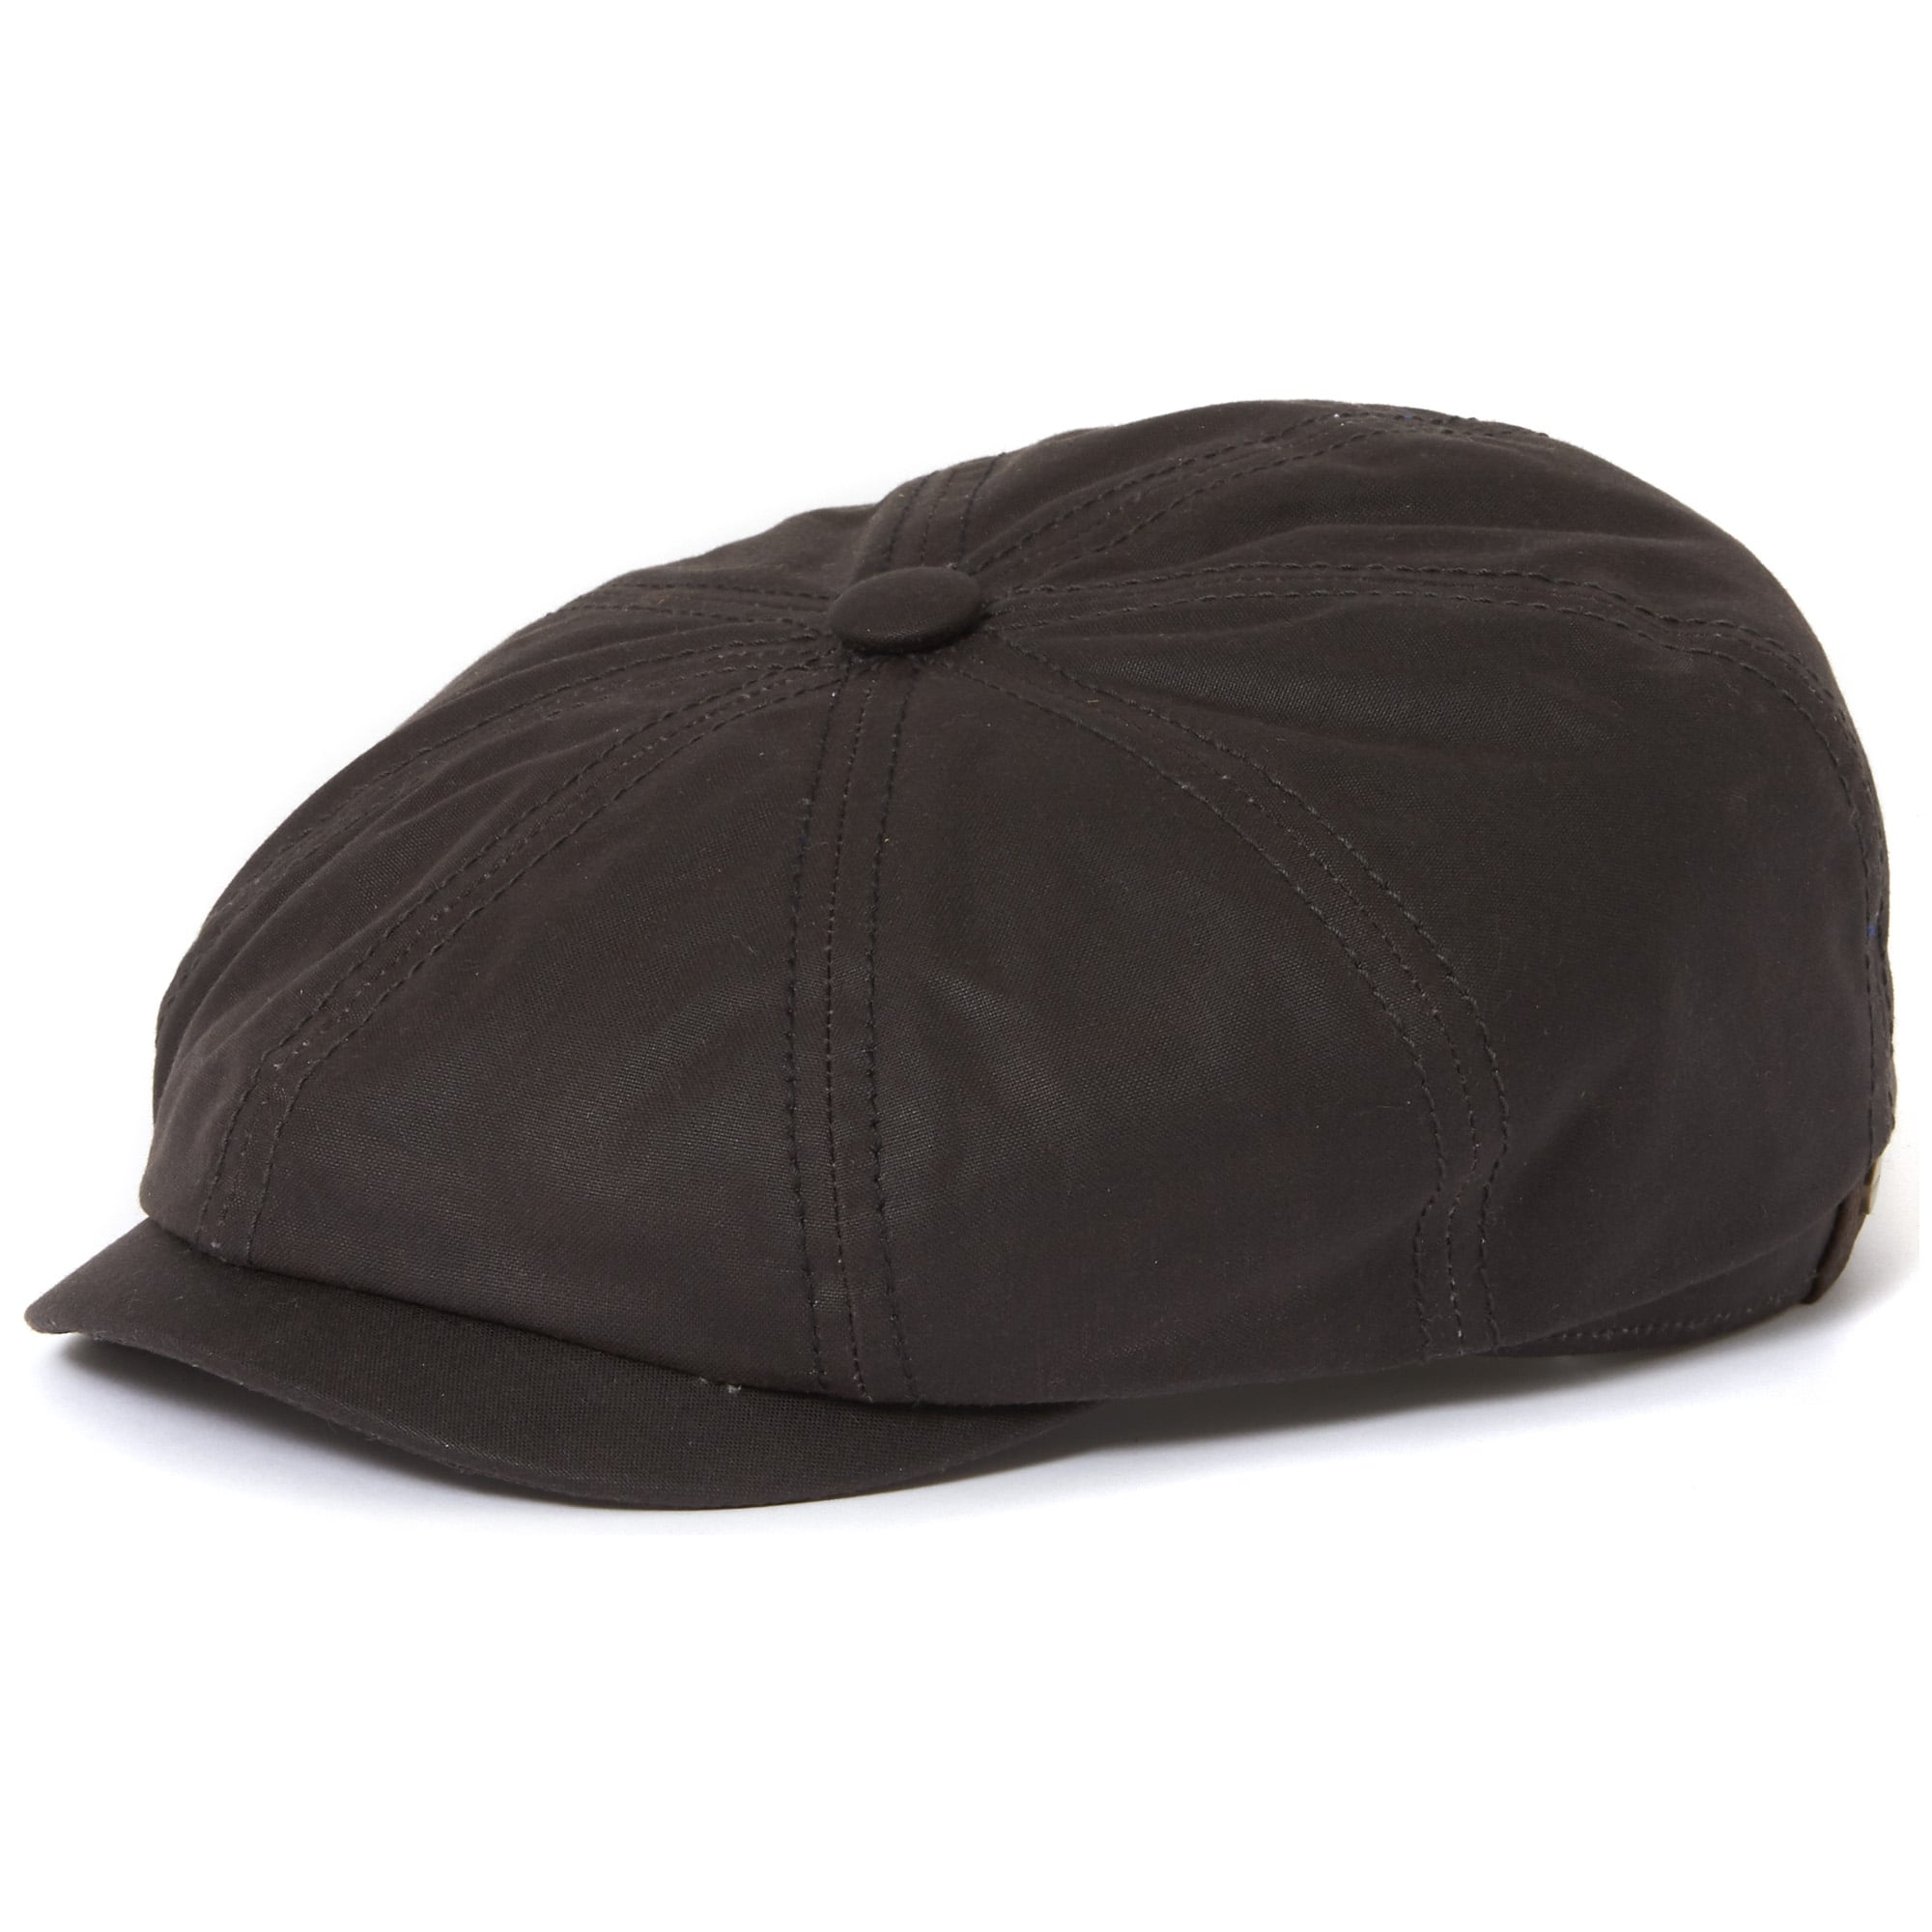 82bf399324f Stetson Hatteras Waxed Cotton Black Newsboy Cap